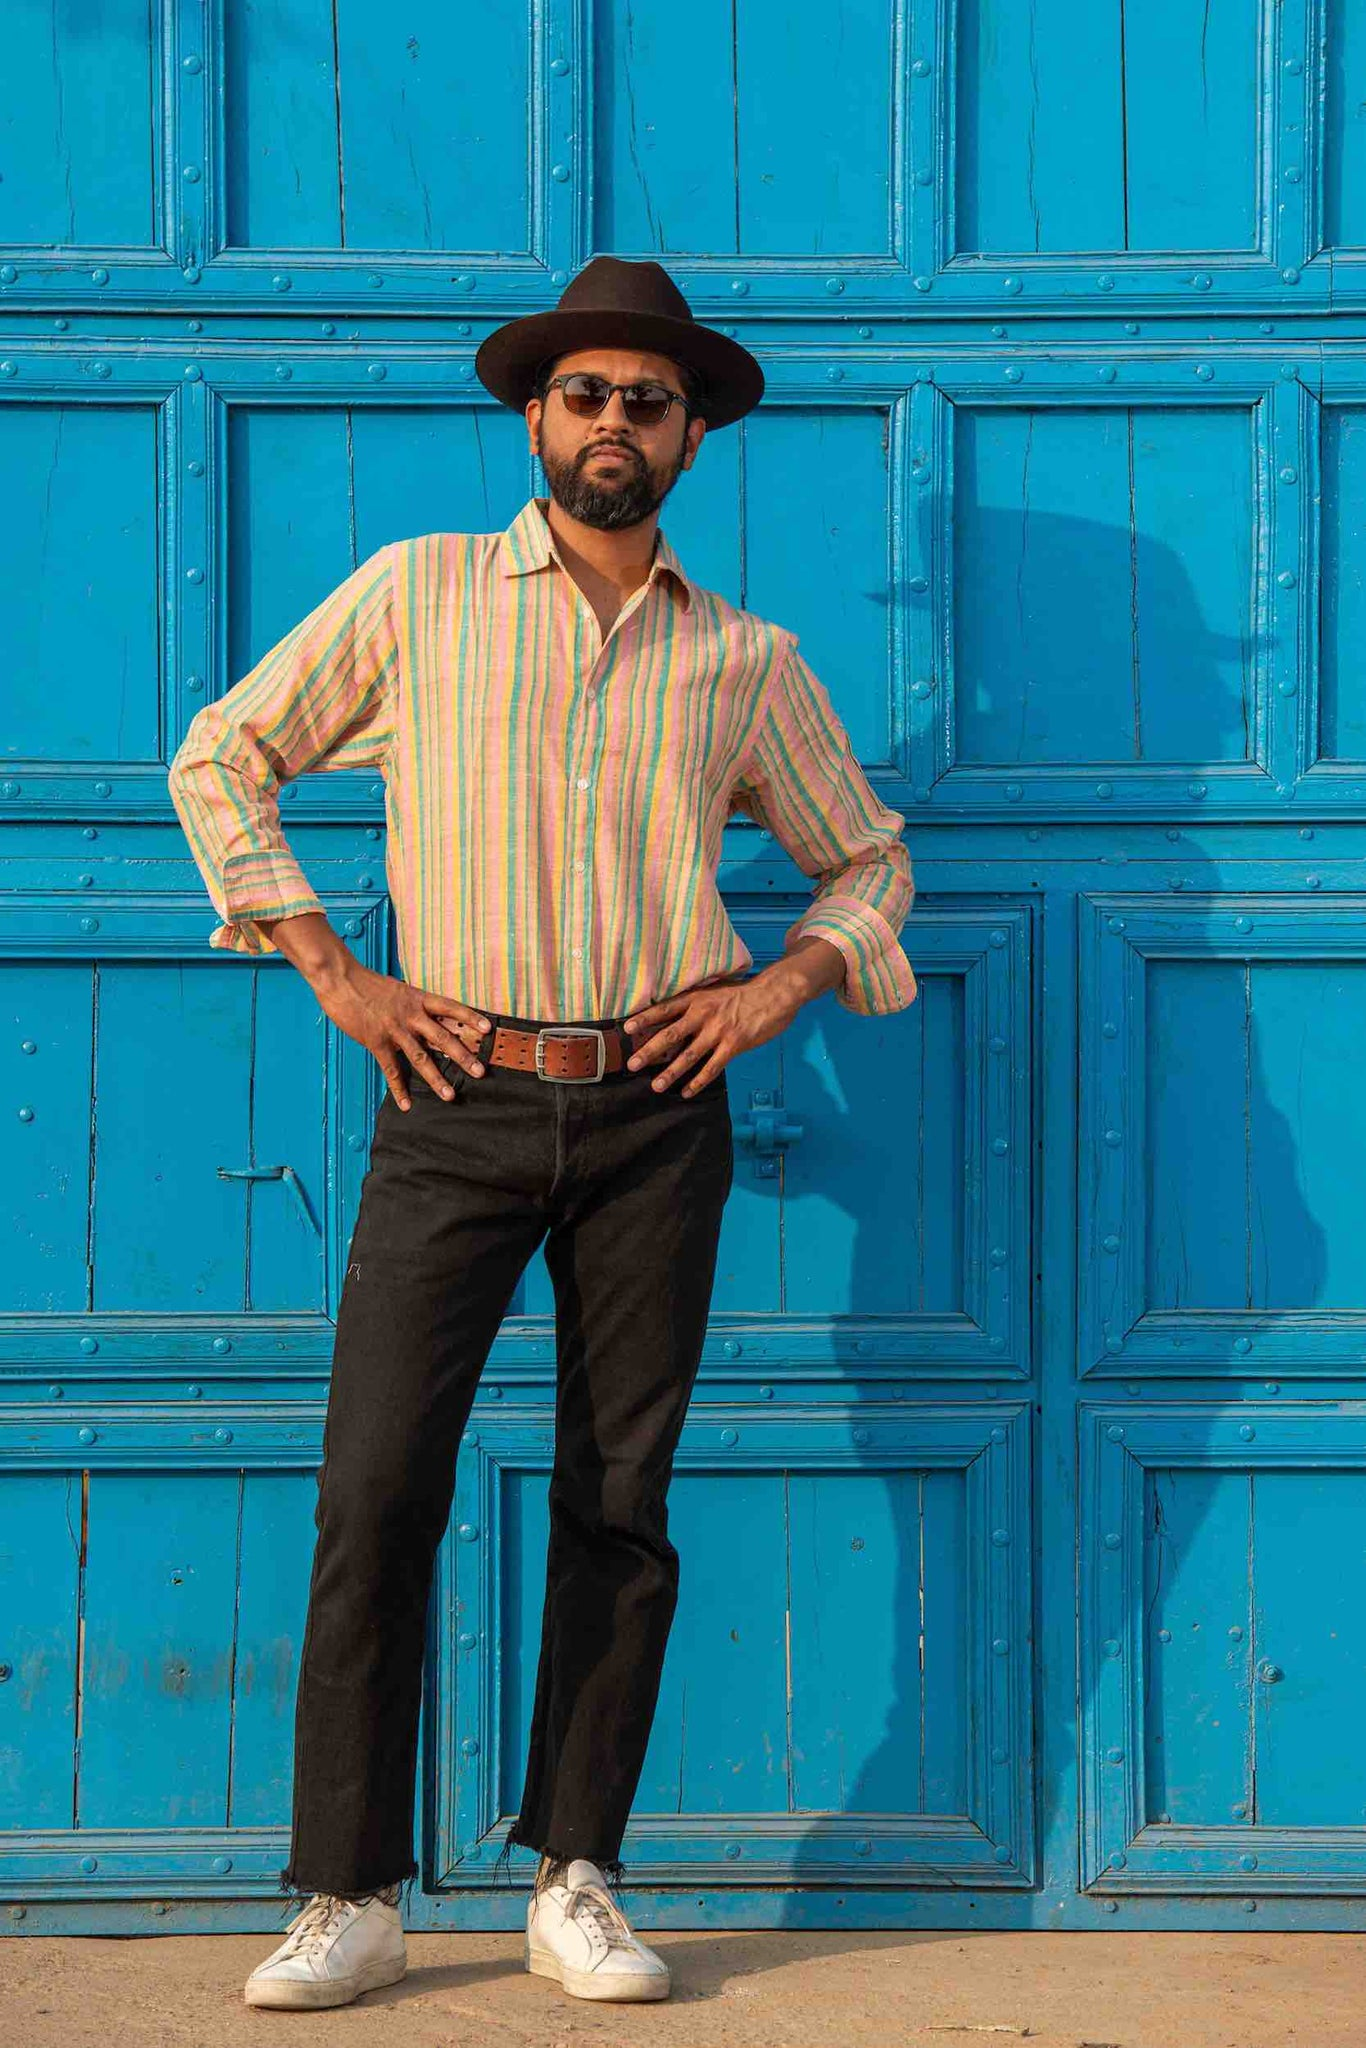 'The Amir' Long Sleeves Shirt in Orange Stripes Hand-loomed Fabric